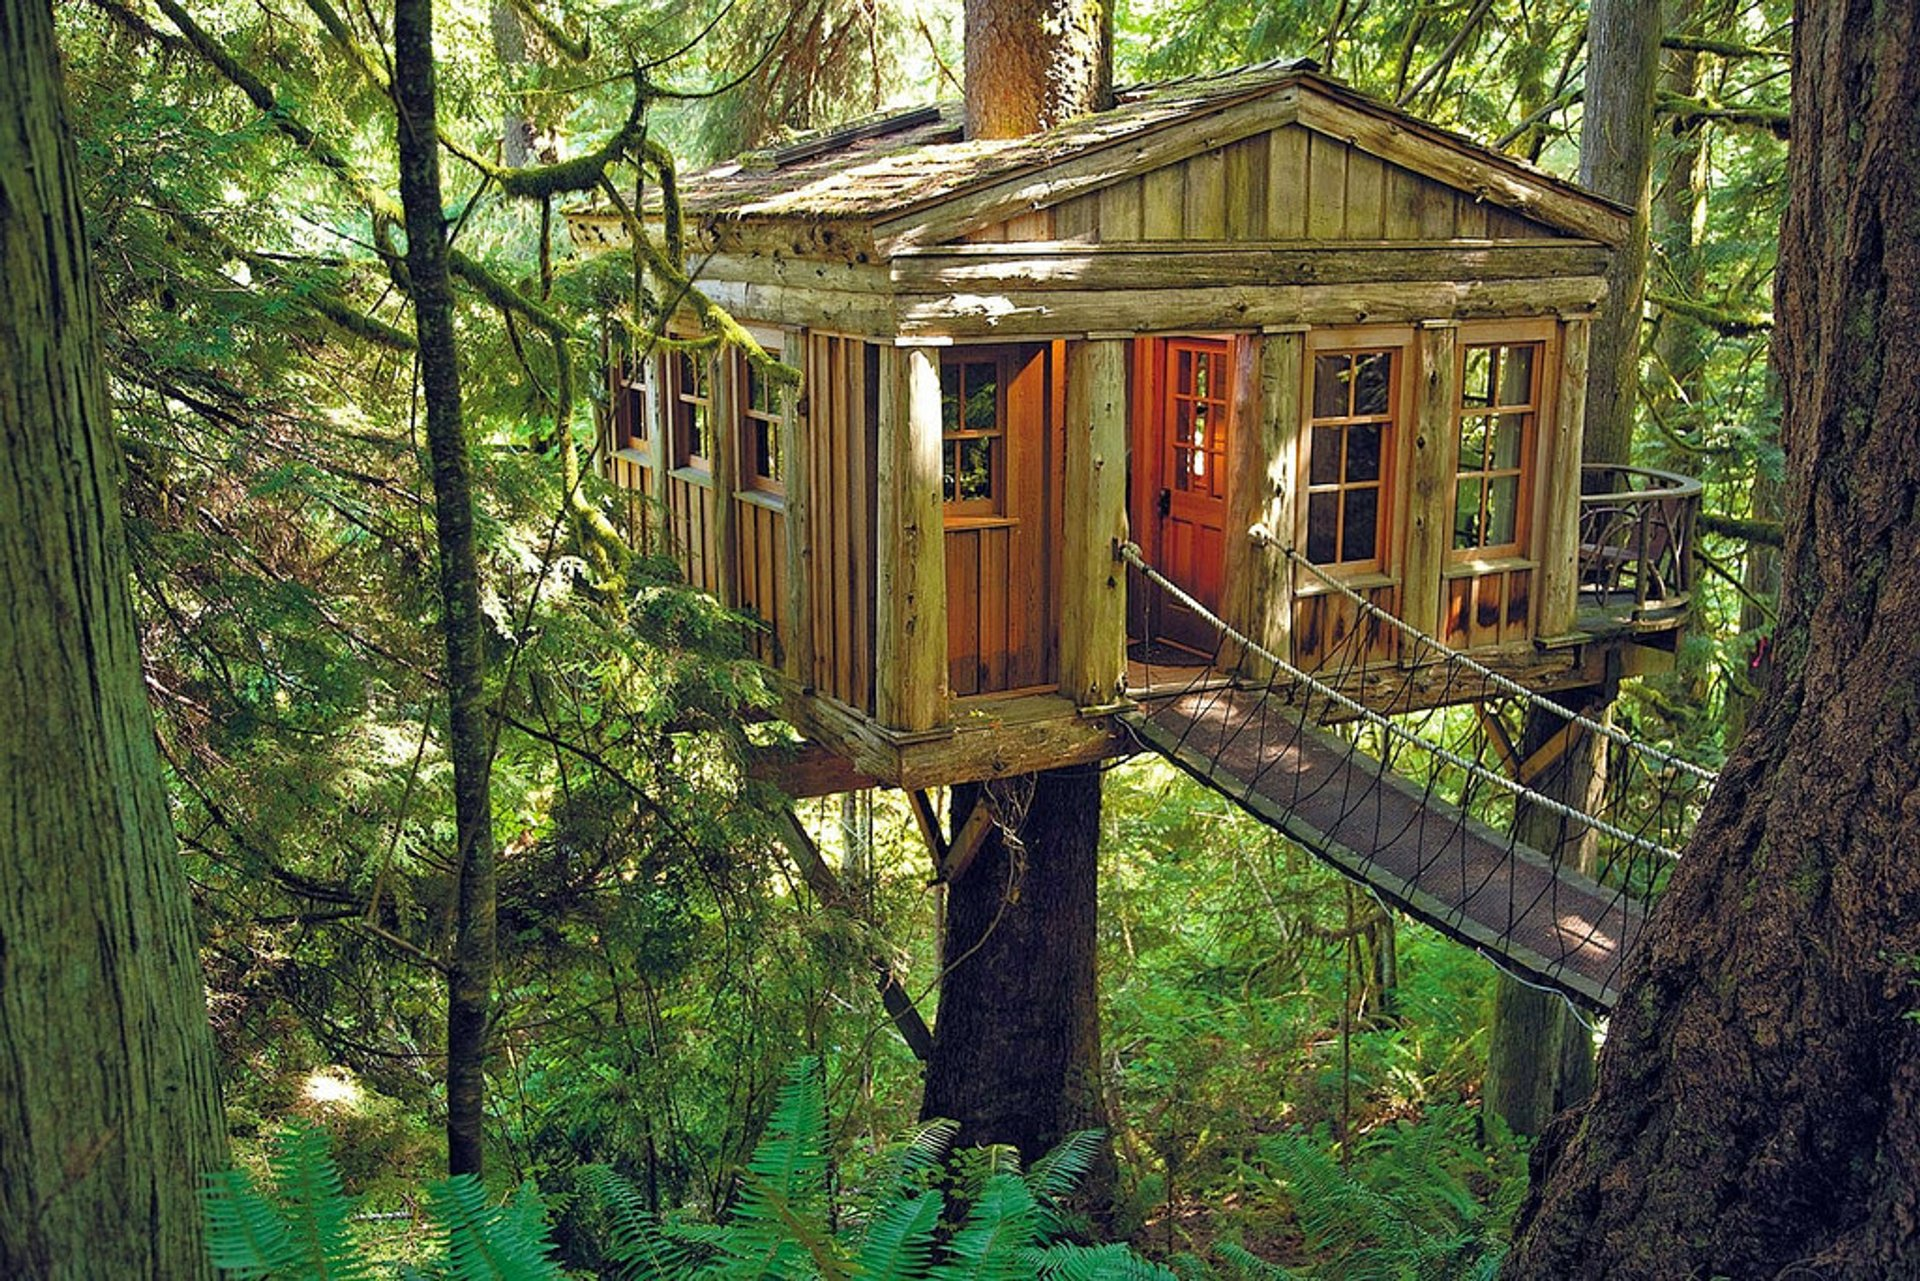 TreeHouse Point in Seattle 2020 - Best Time